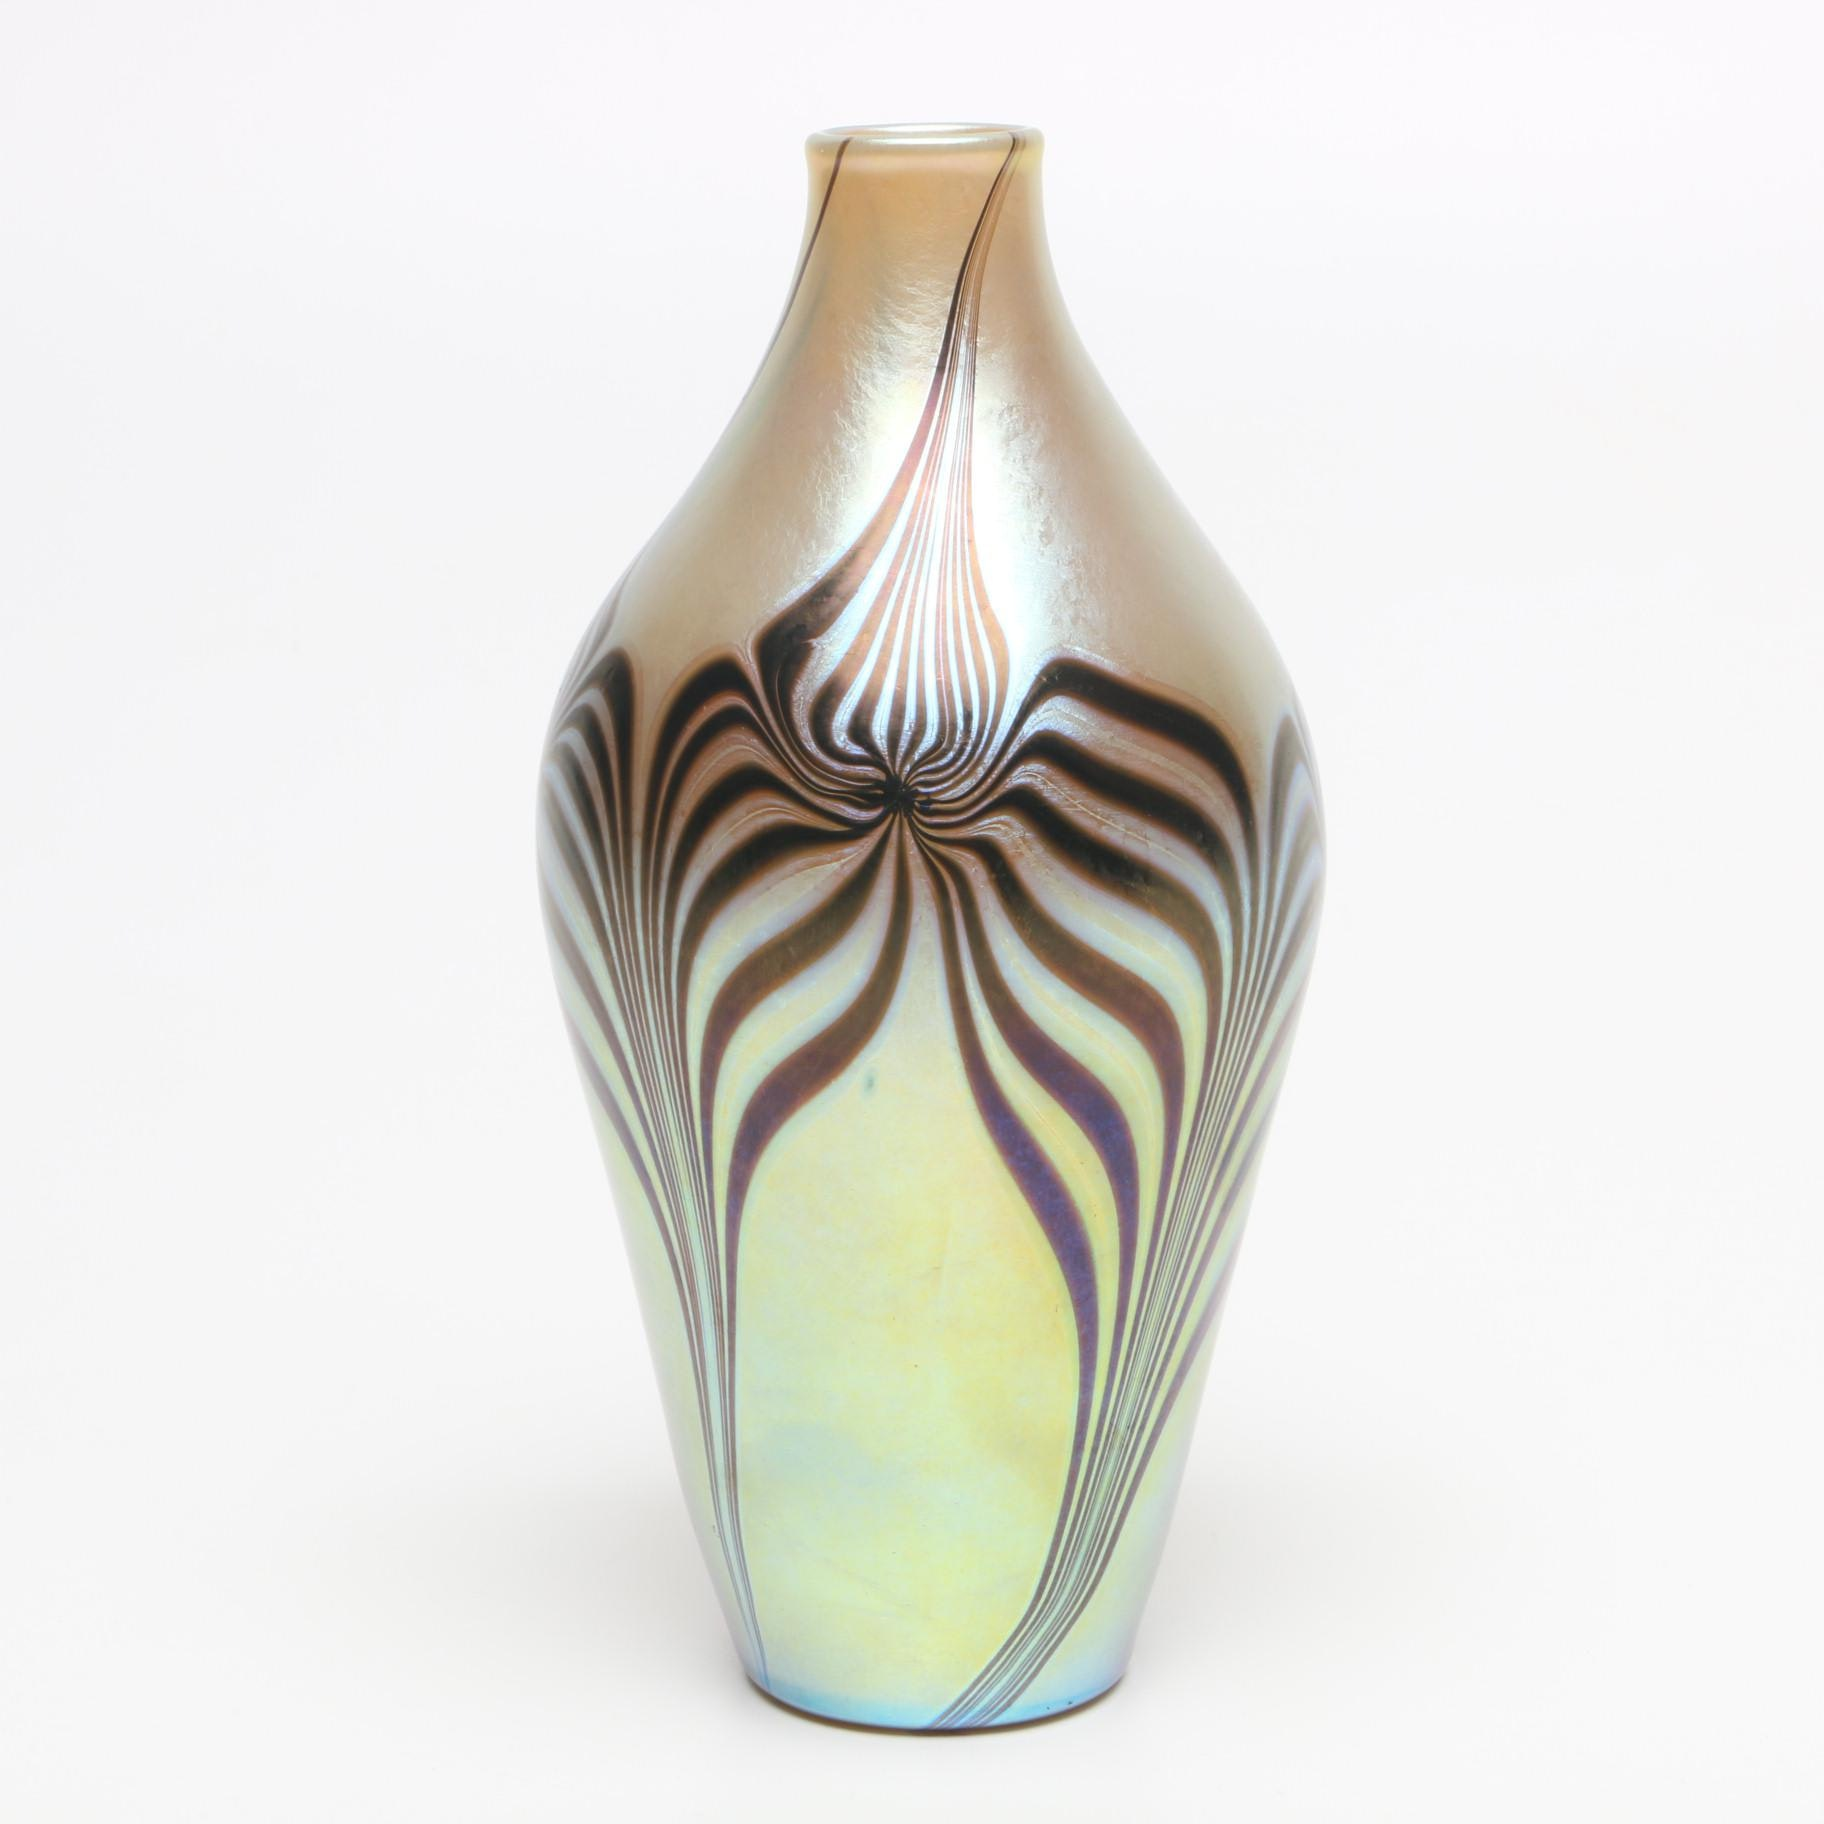 Lundberg Studio Hand Blown Art Glass Vase